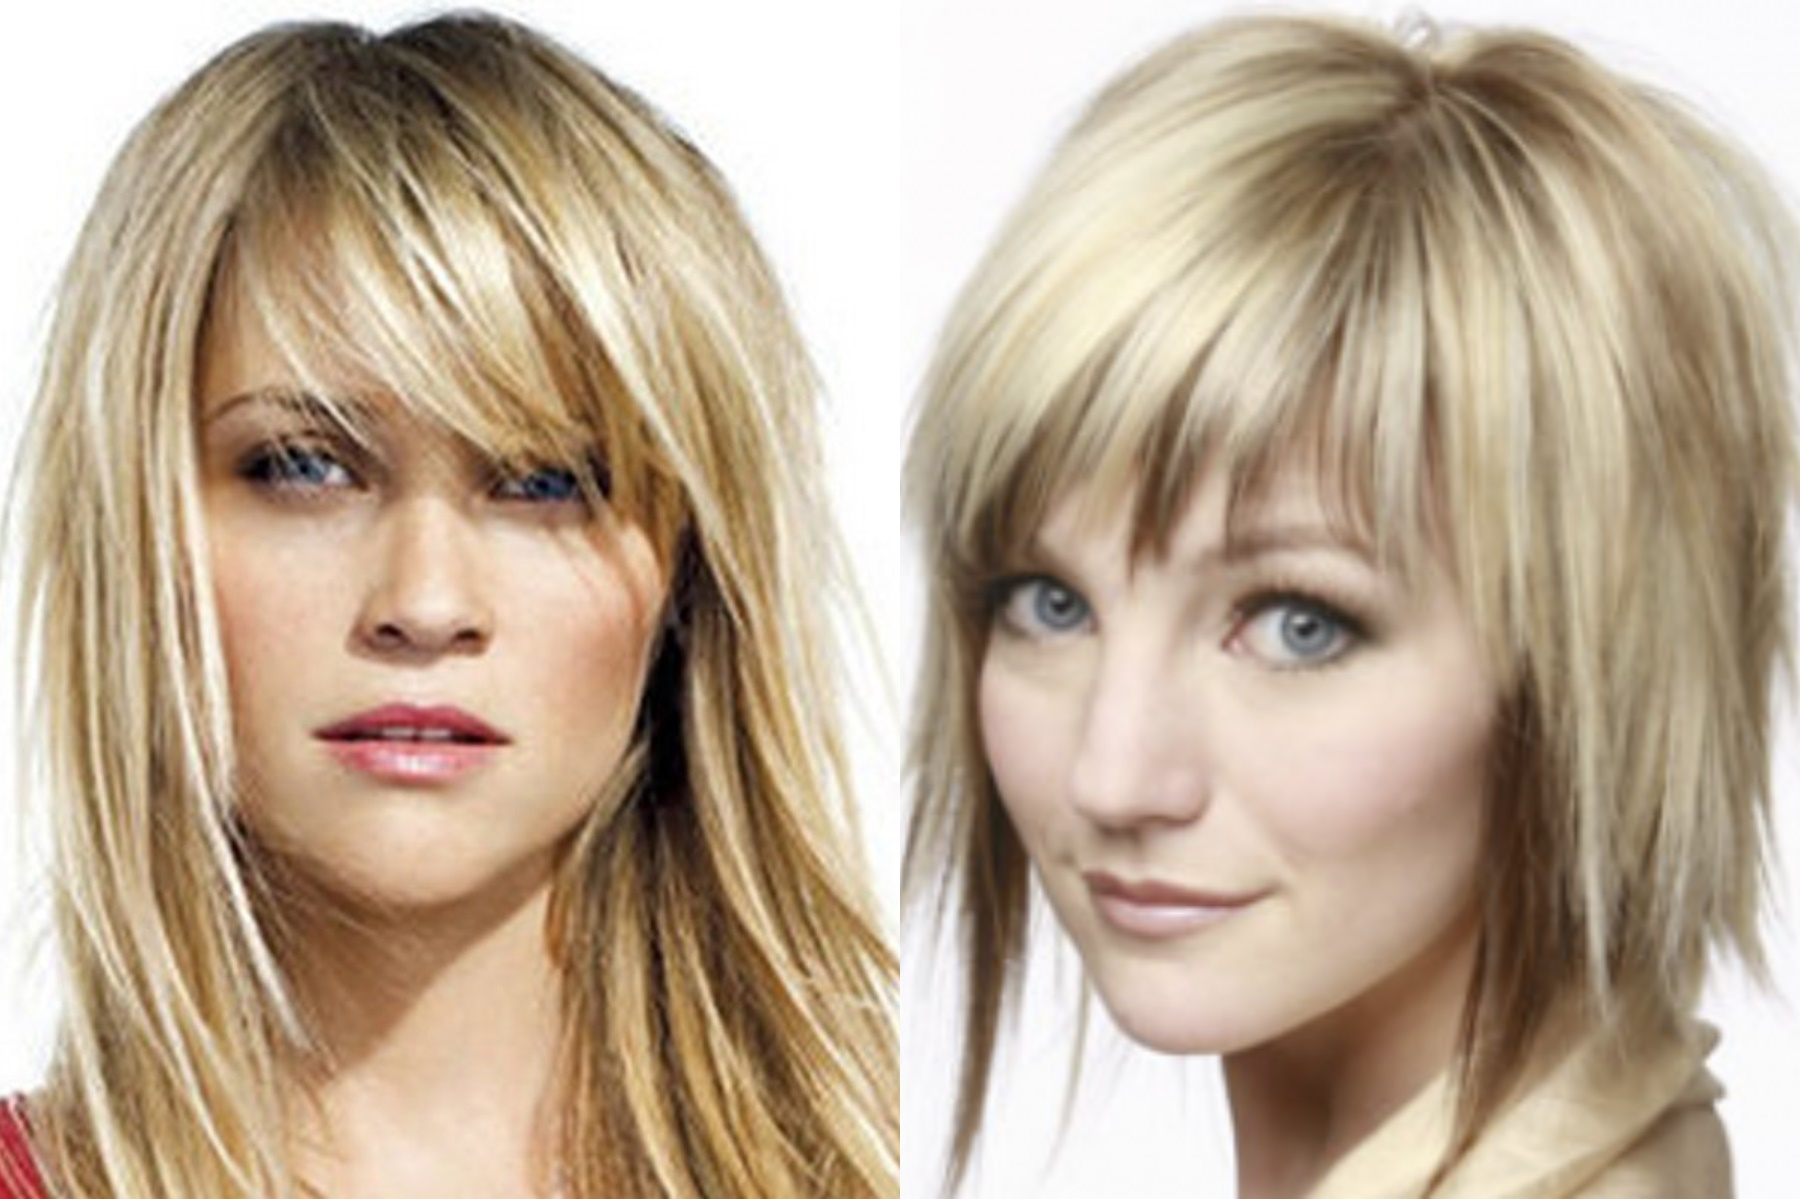 Latest Ragged Bangs 2018 For Women's Hairstyles 4